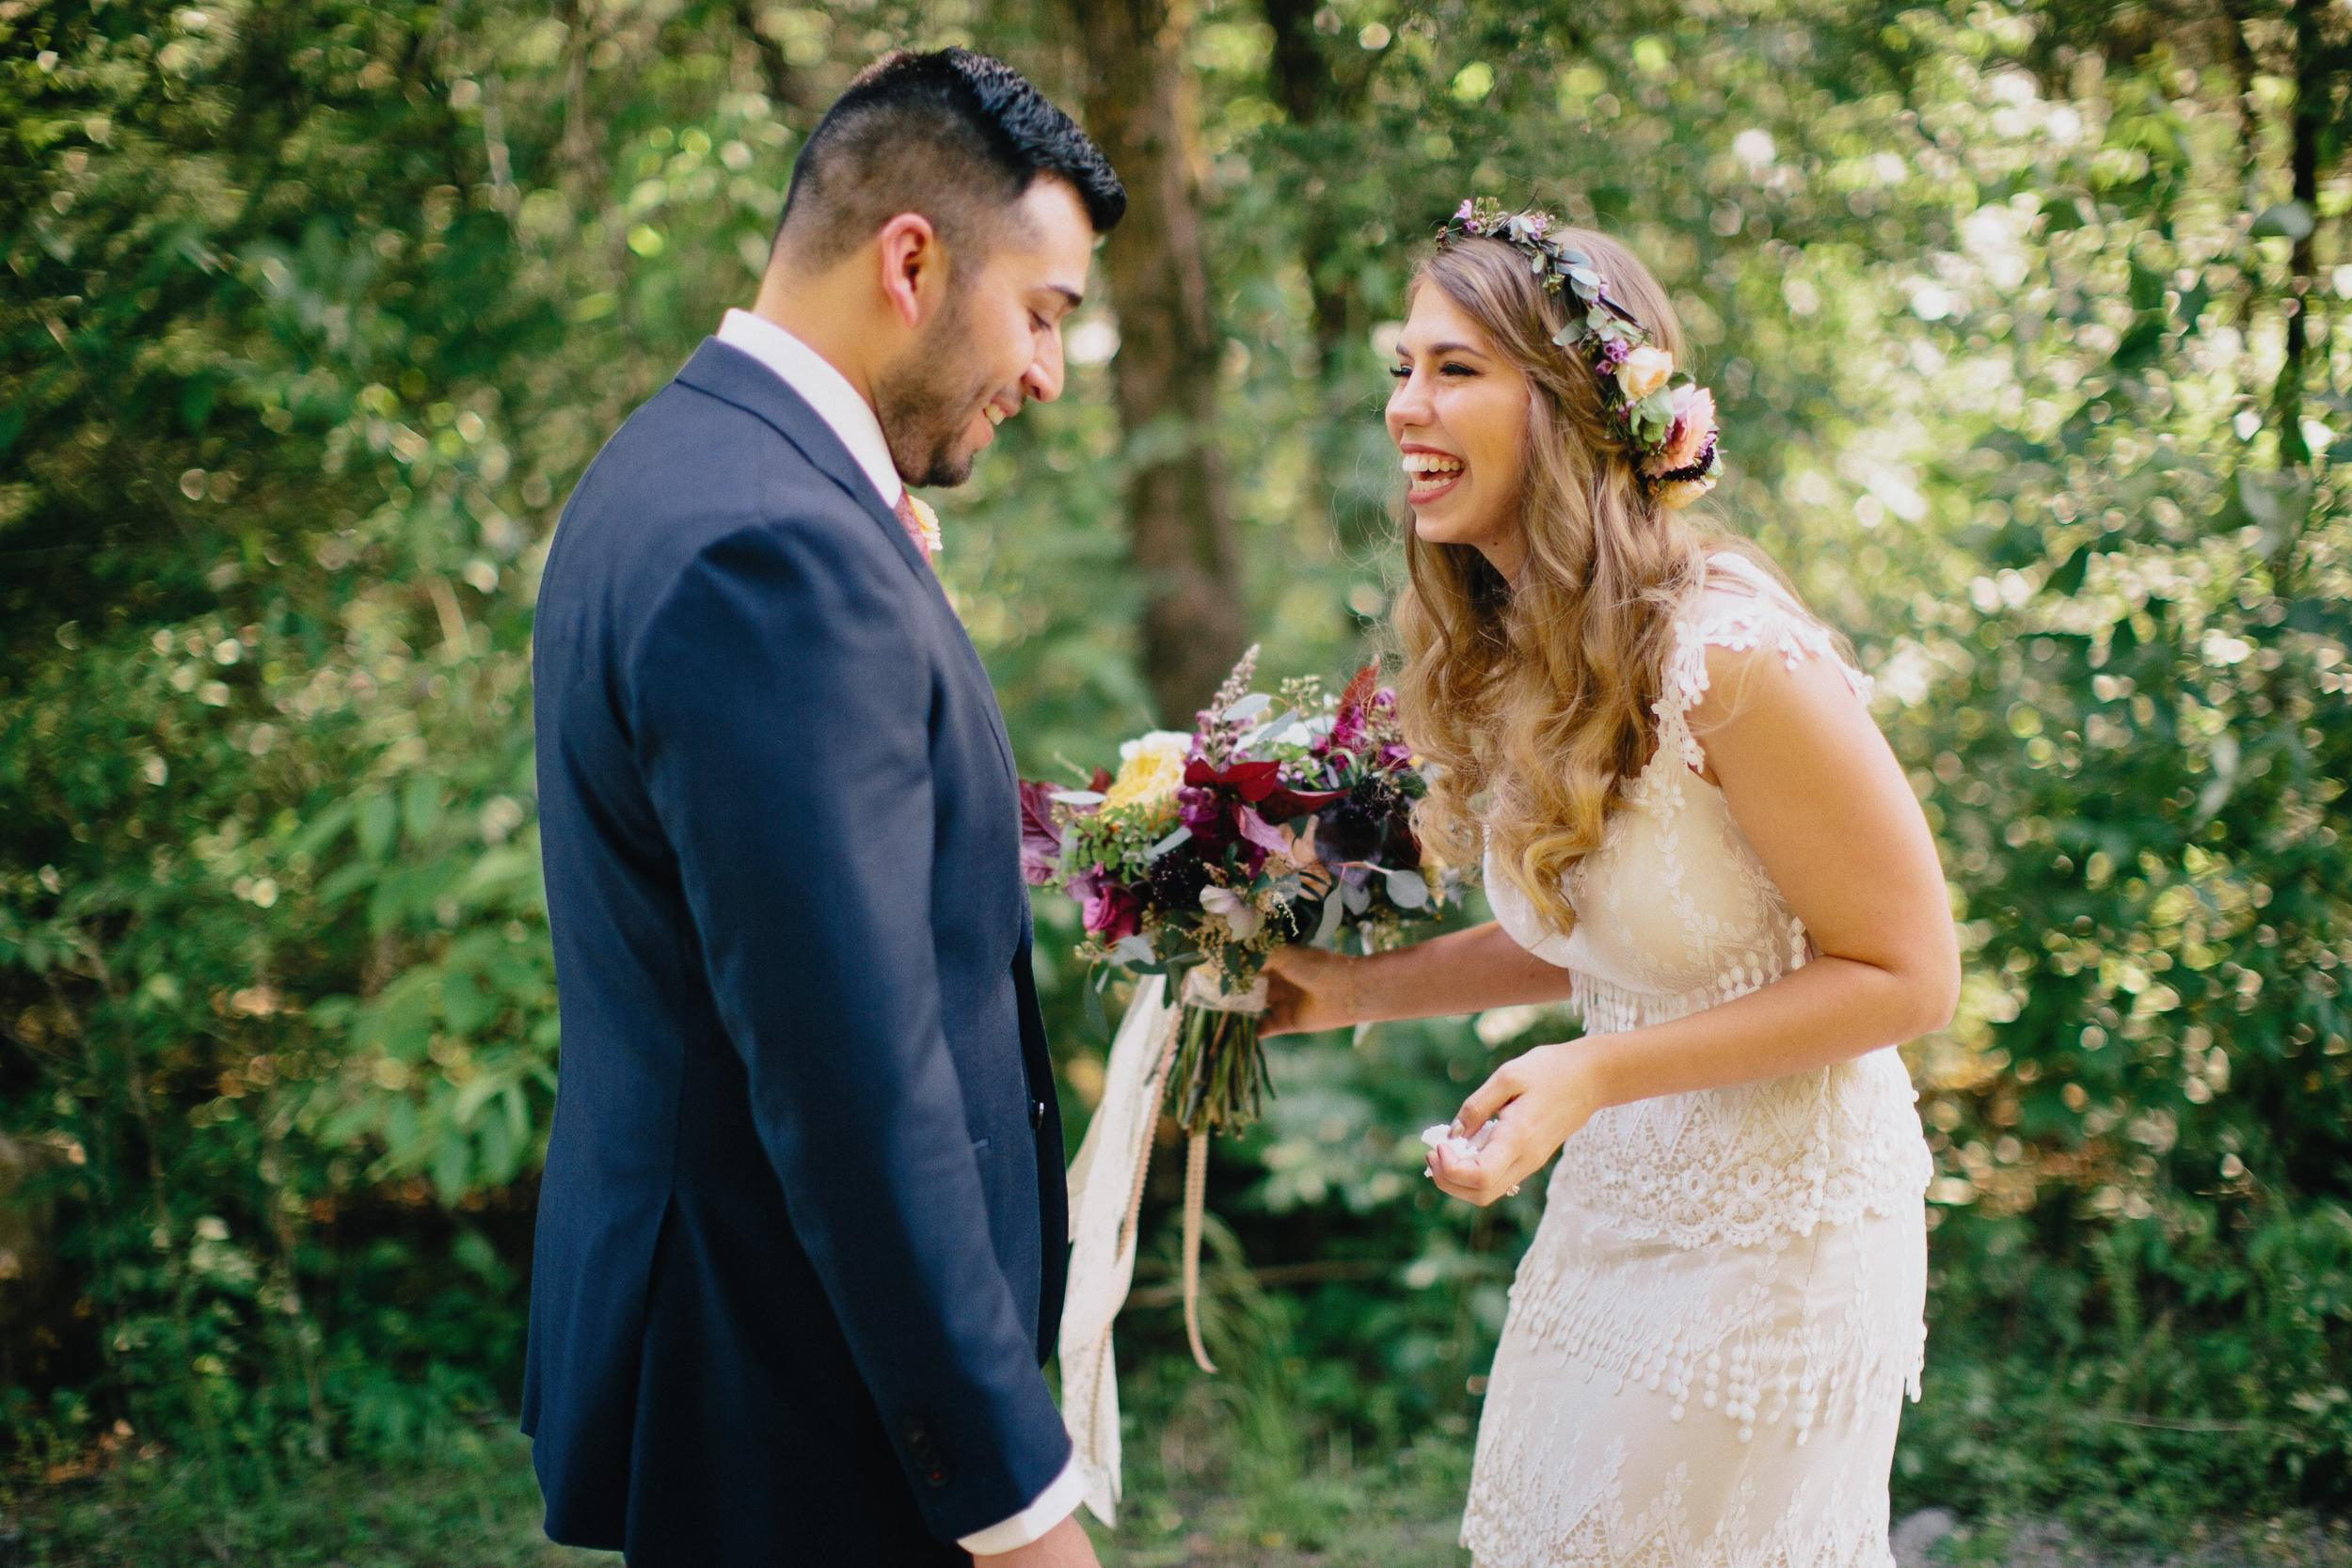 First Look // Natural, lush floral design